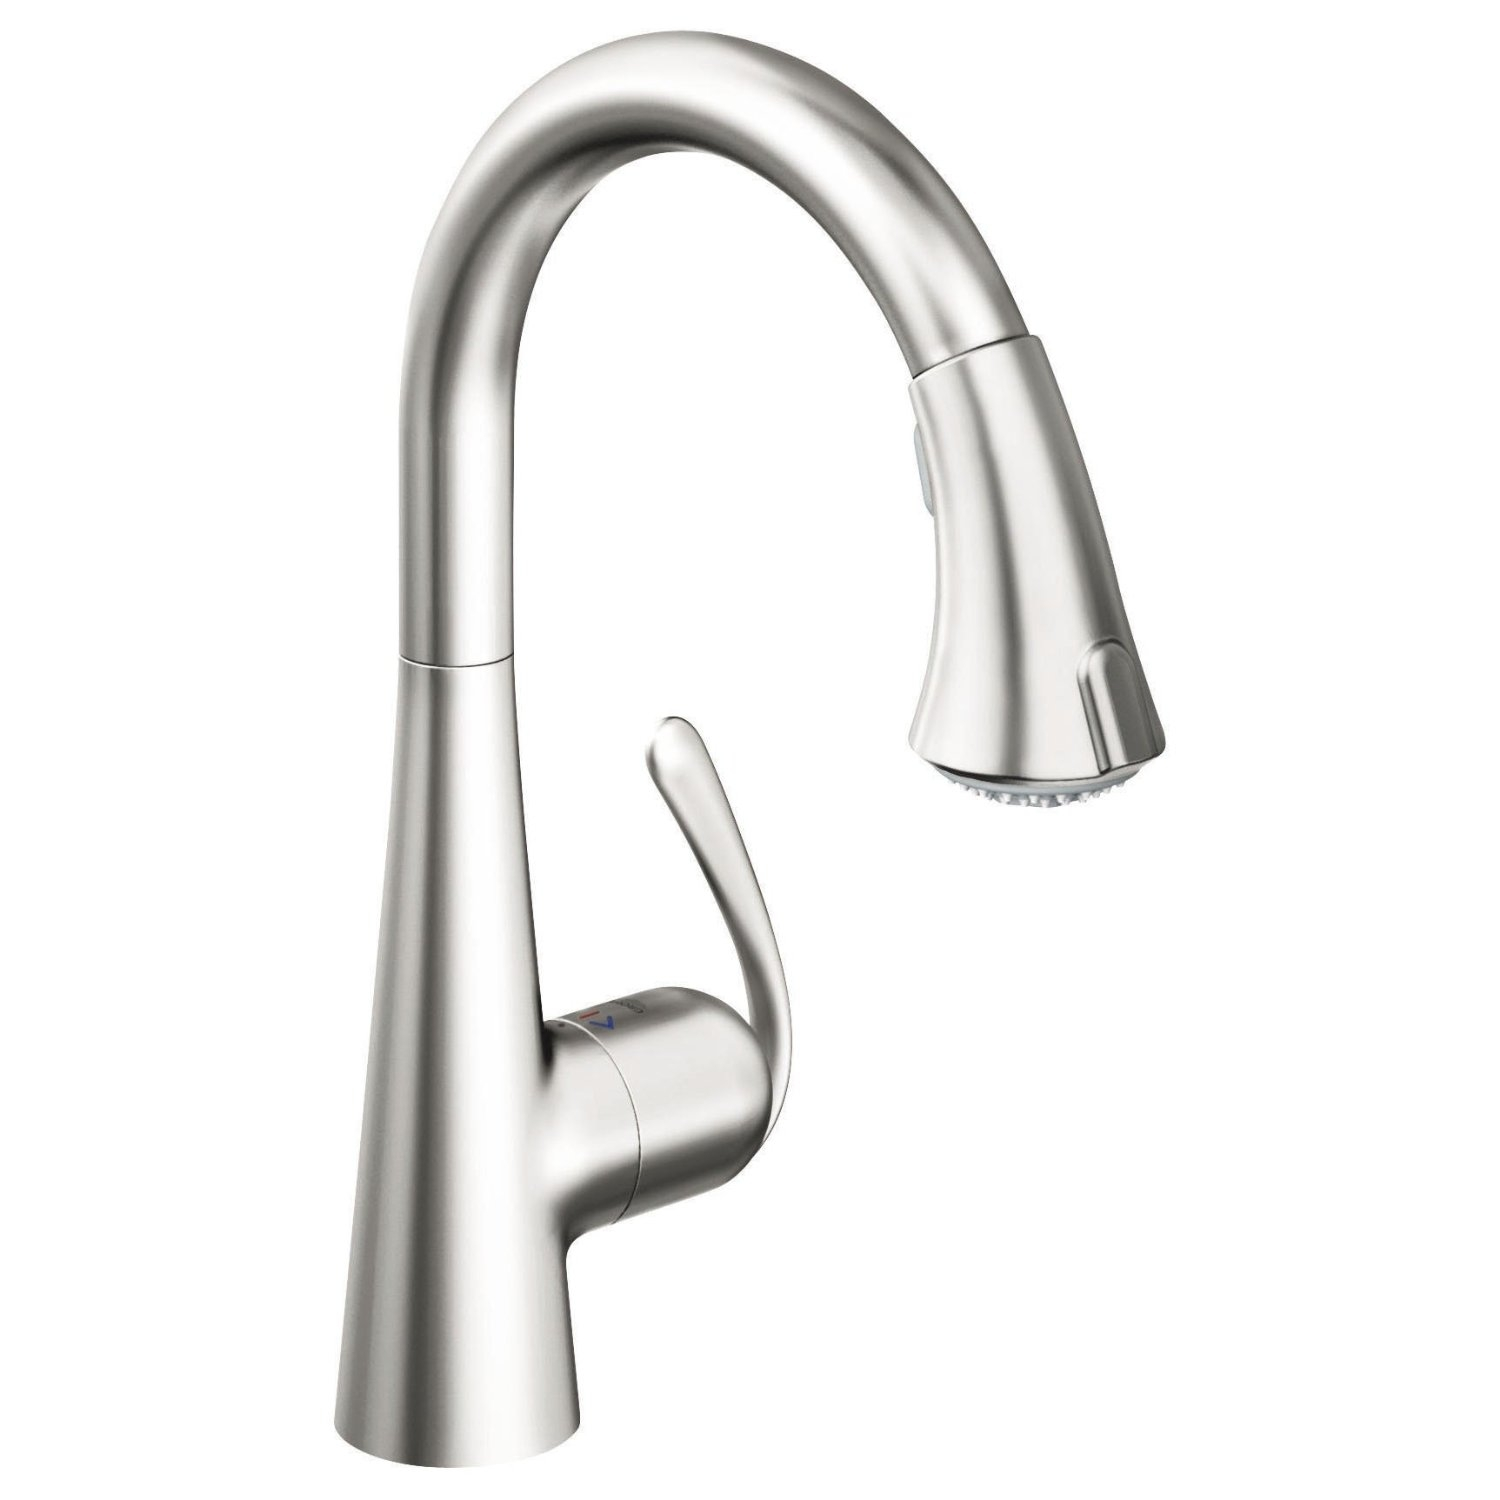 grohe kitchen faucet pull out spray hose grohe kitchen faucet pull out spray hose black kitchen faucet canada karbon deckmount kitchen faucet 1500 x 1500